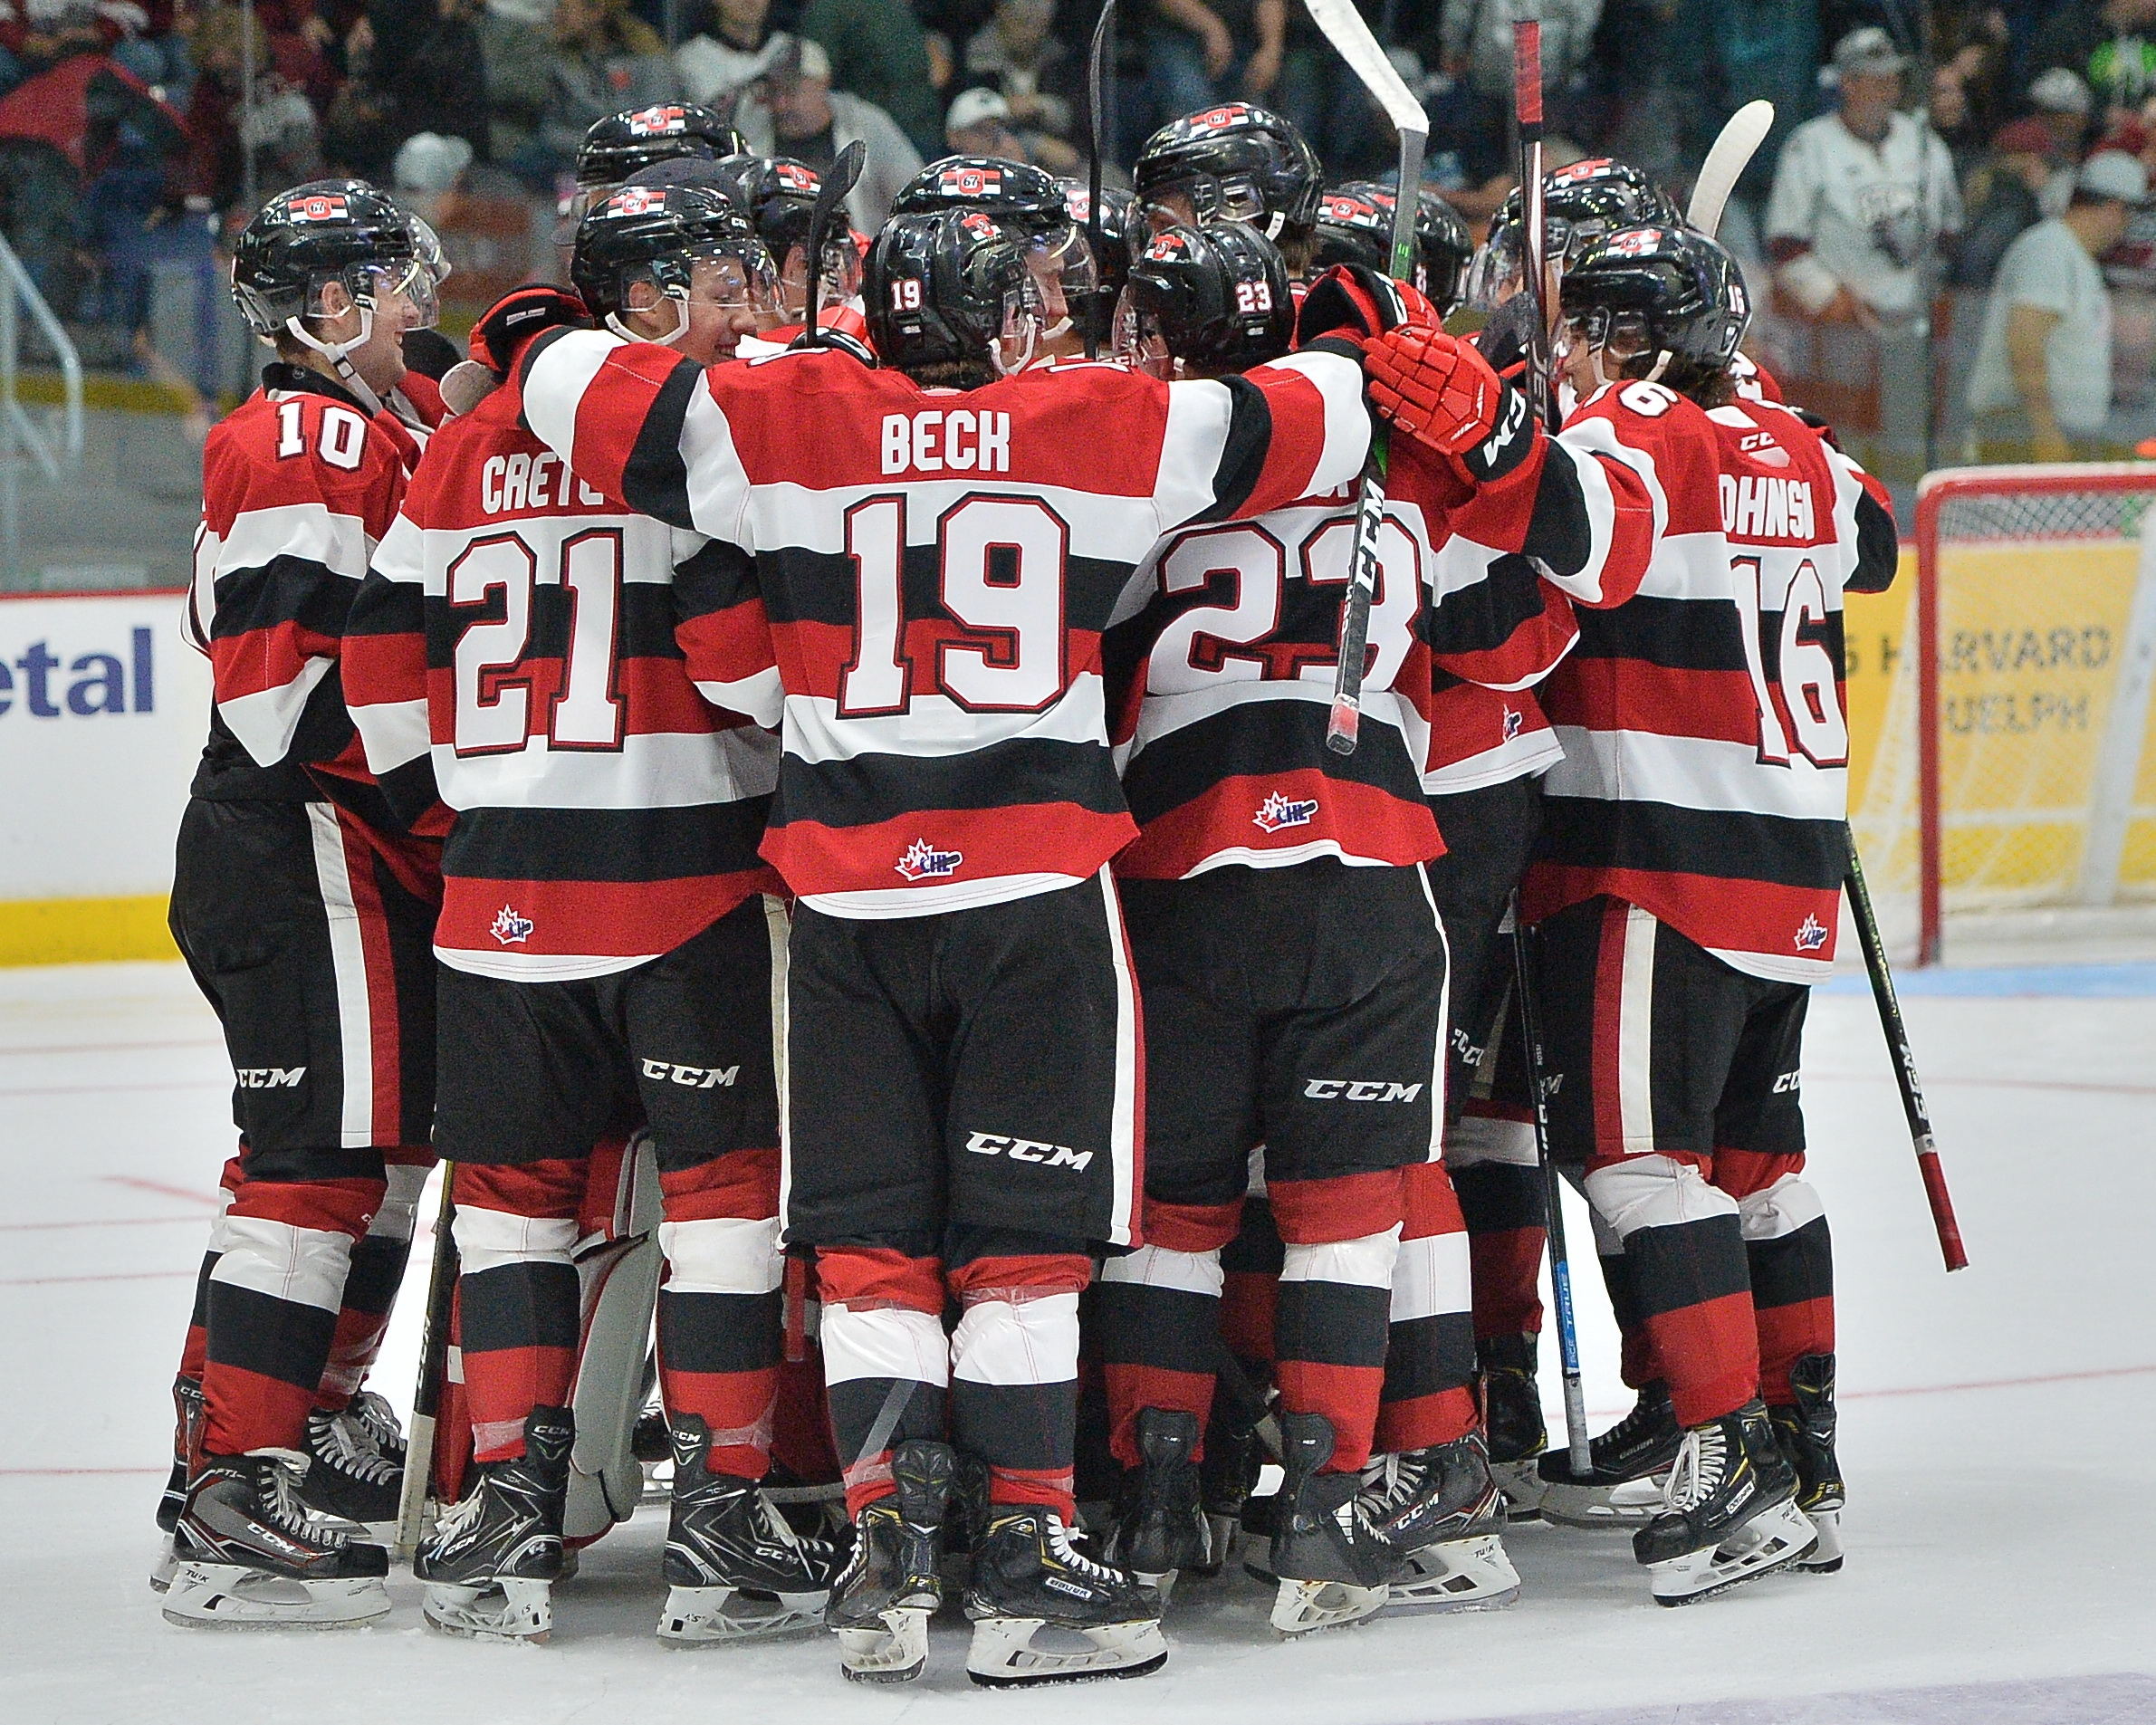 CHL Notebook: Ottawa 67's will be tough test again in OHL playoffs - Sportsnet.ca